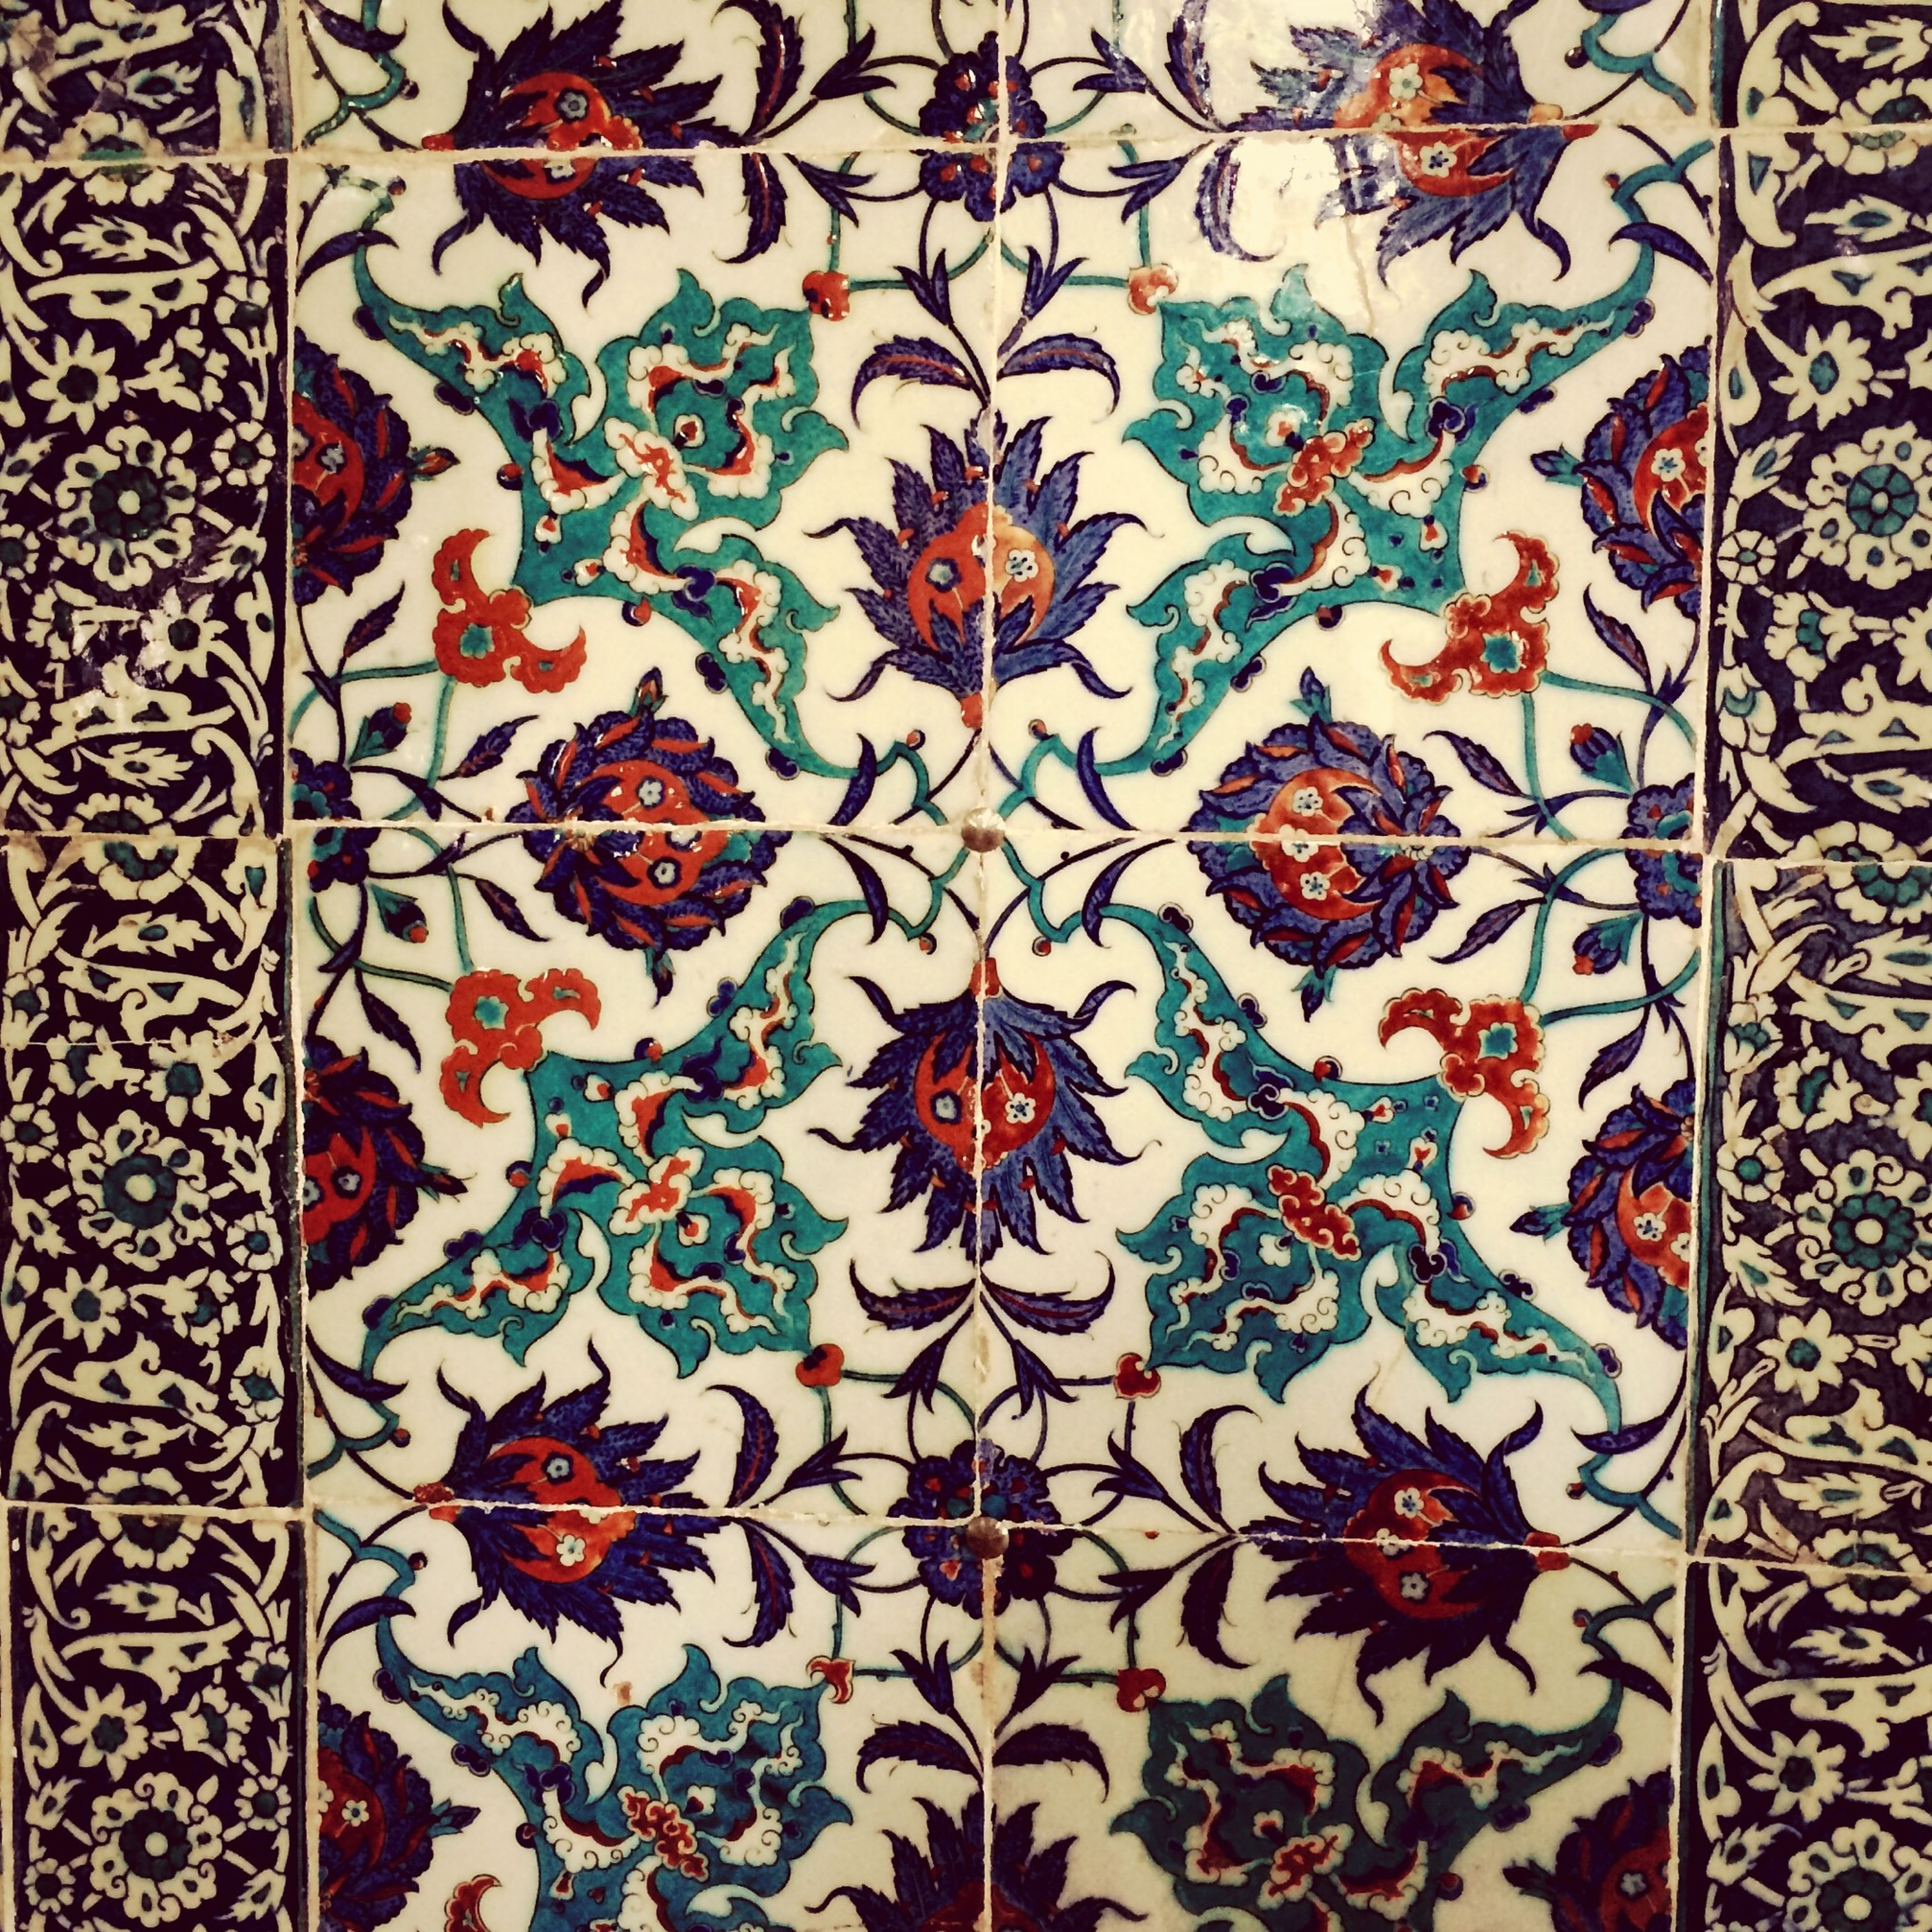 indoors, pattern, design, full frame, art and craft, floral pattern, art, creativity, backgrounds, wall - building feature, textured, ceiling, decoration, flooring, multi colored, wall, ornate, close-up, tile, no people